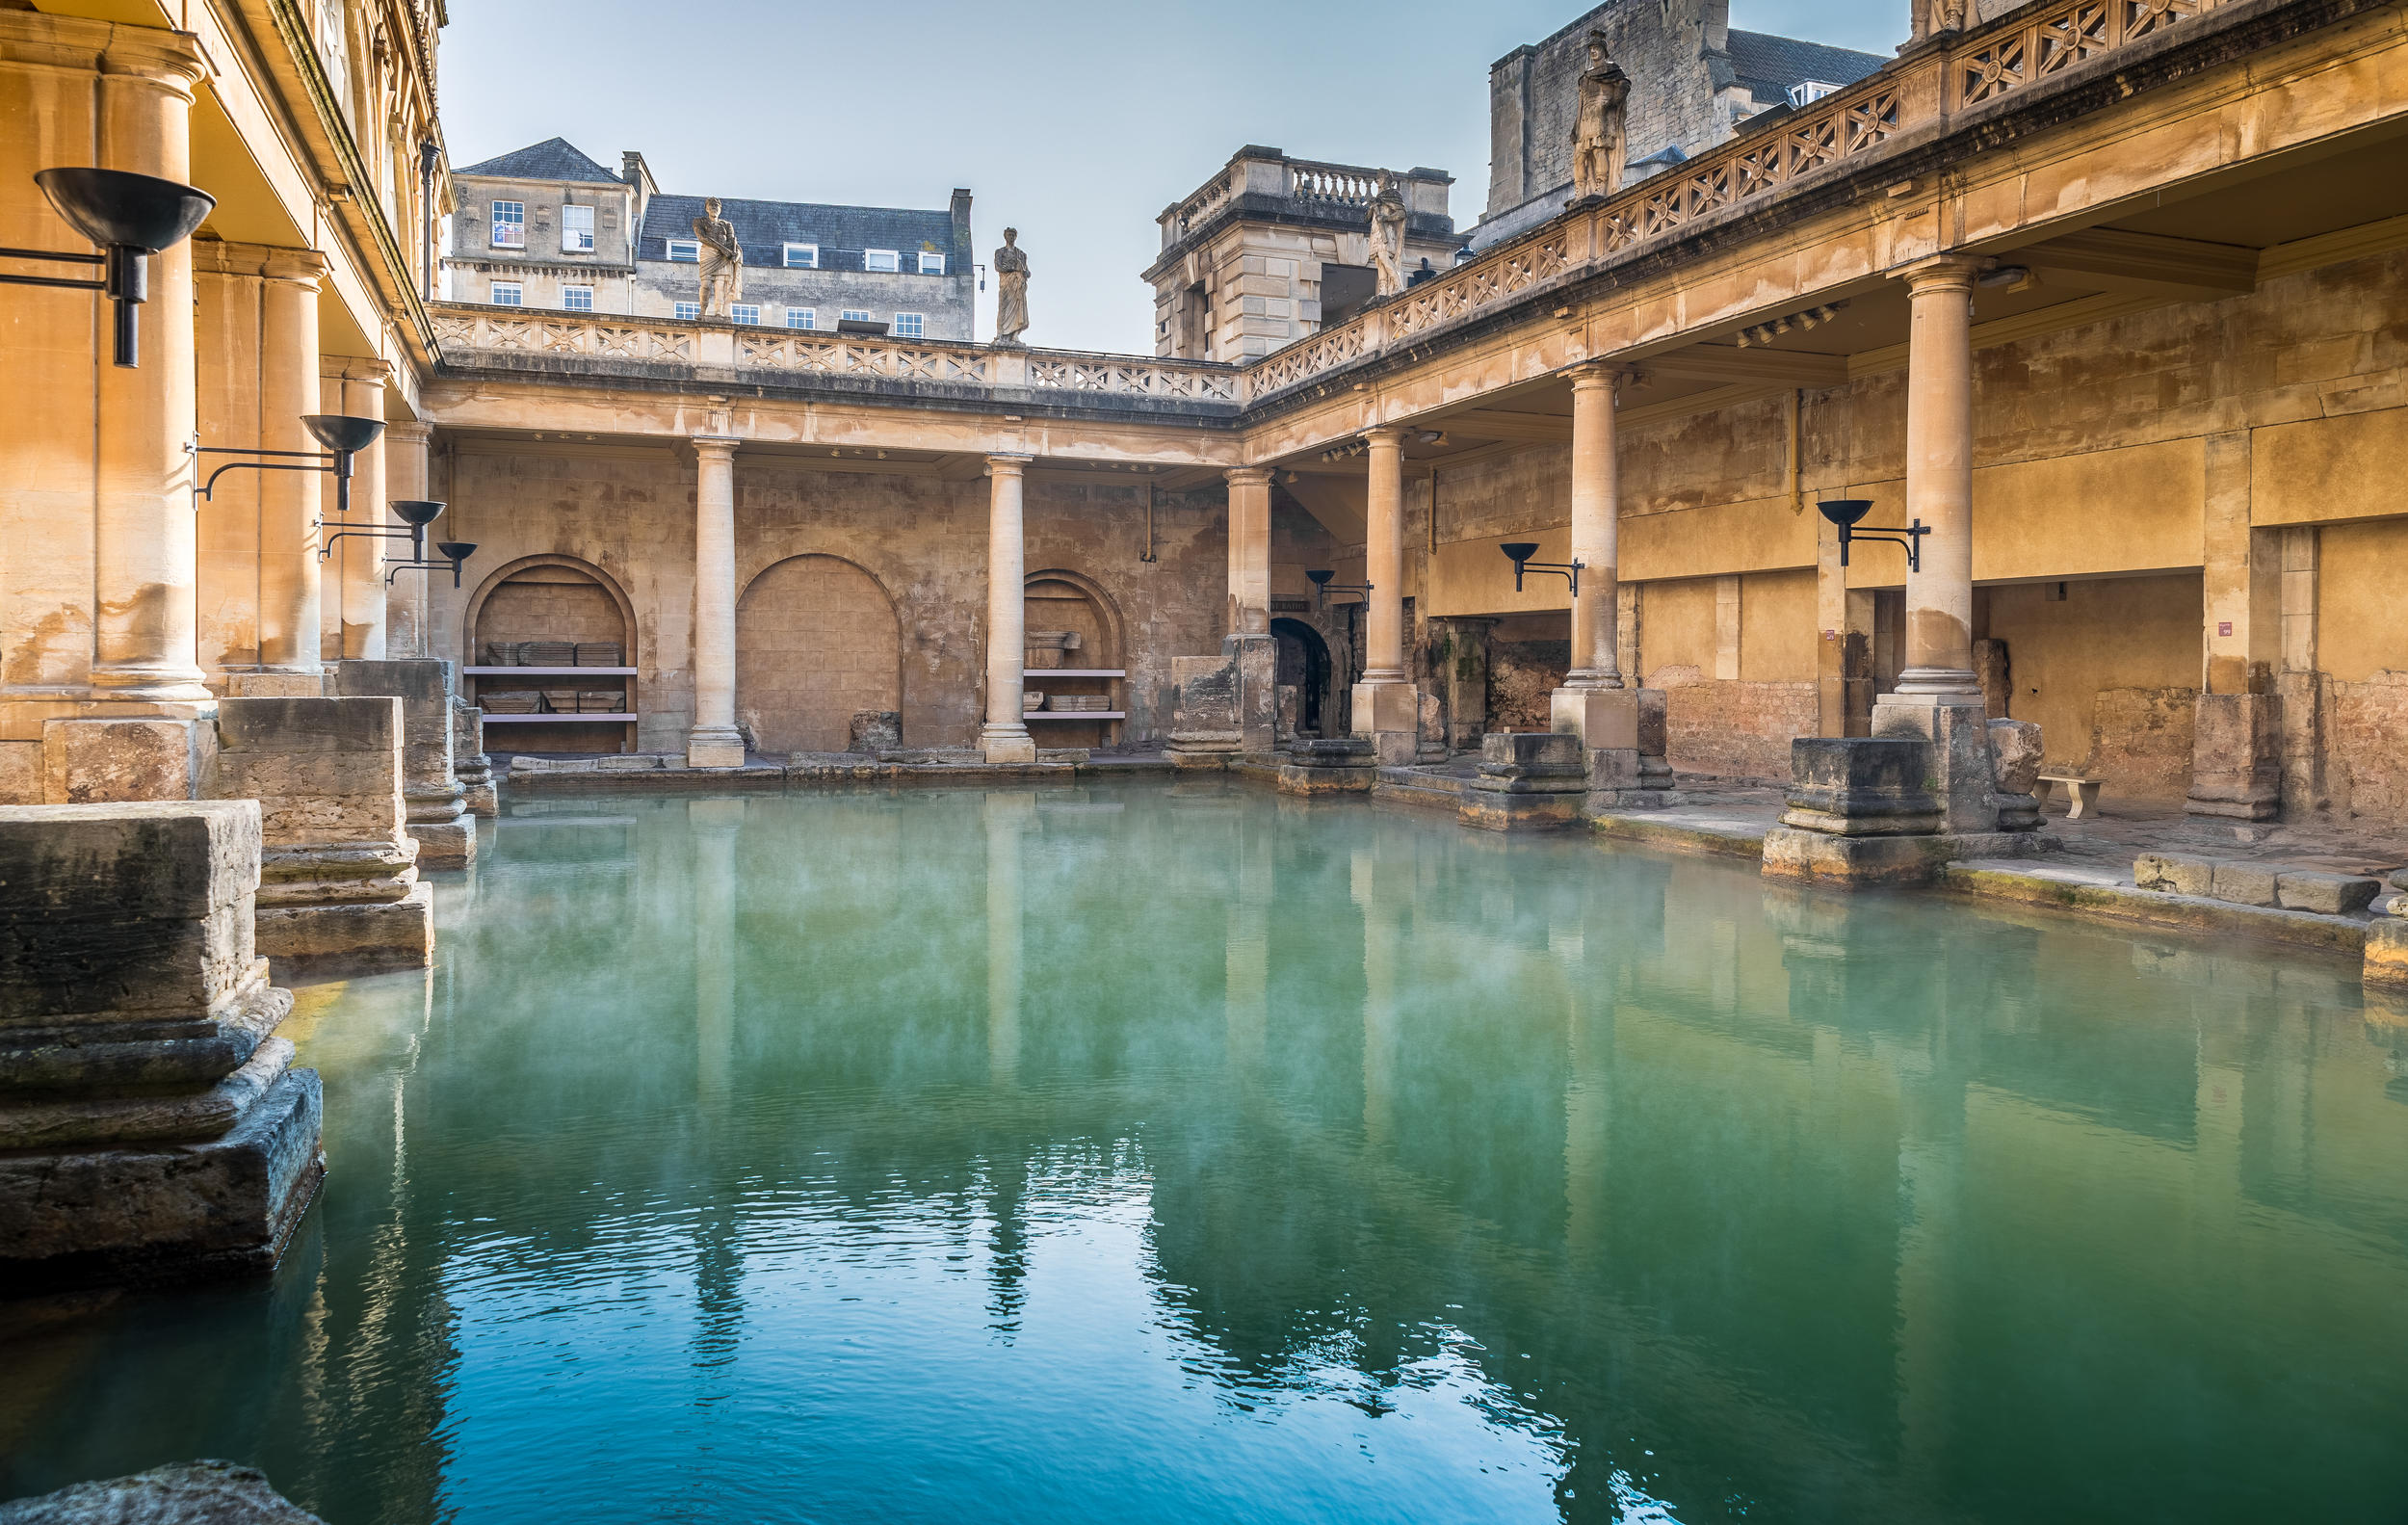 Online ticketing faqs the roman baths for Bristol university swimming pool opening times